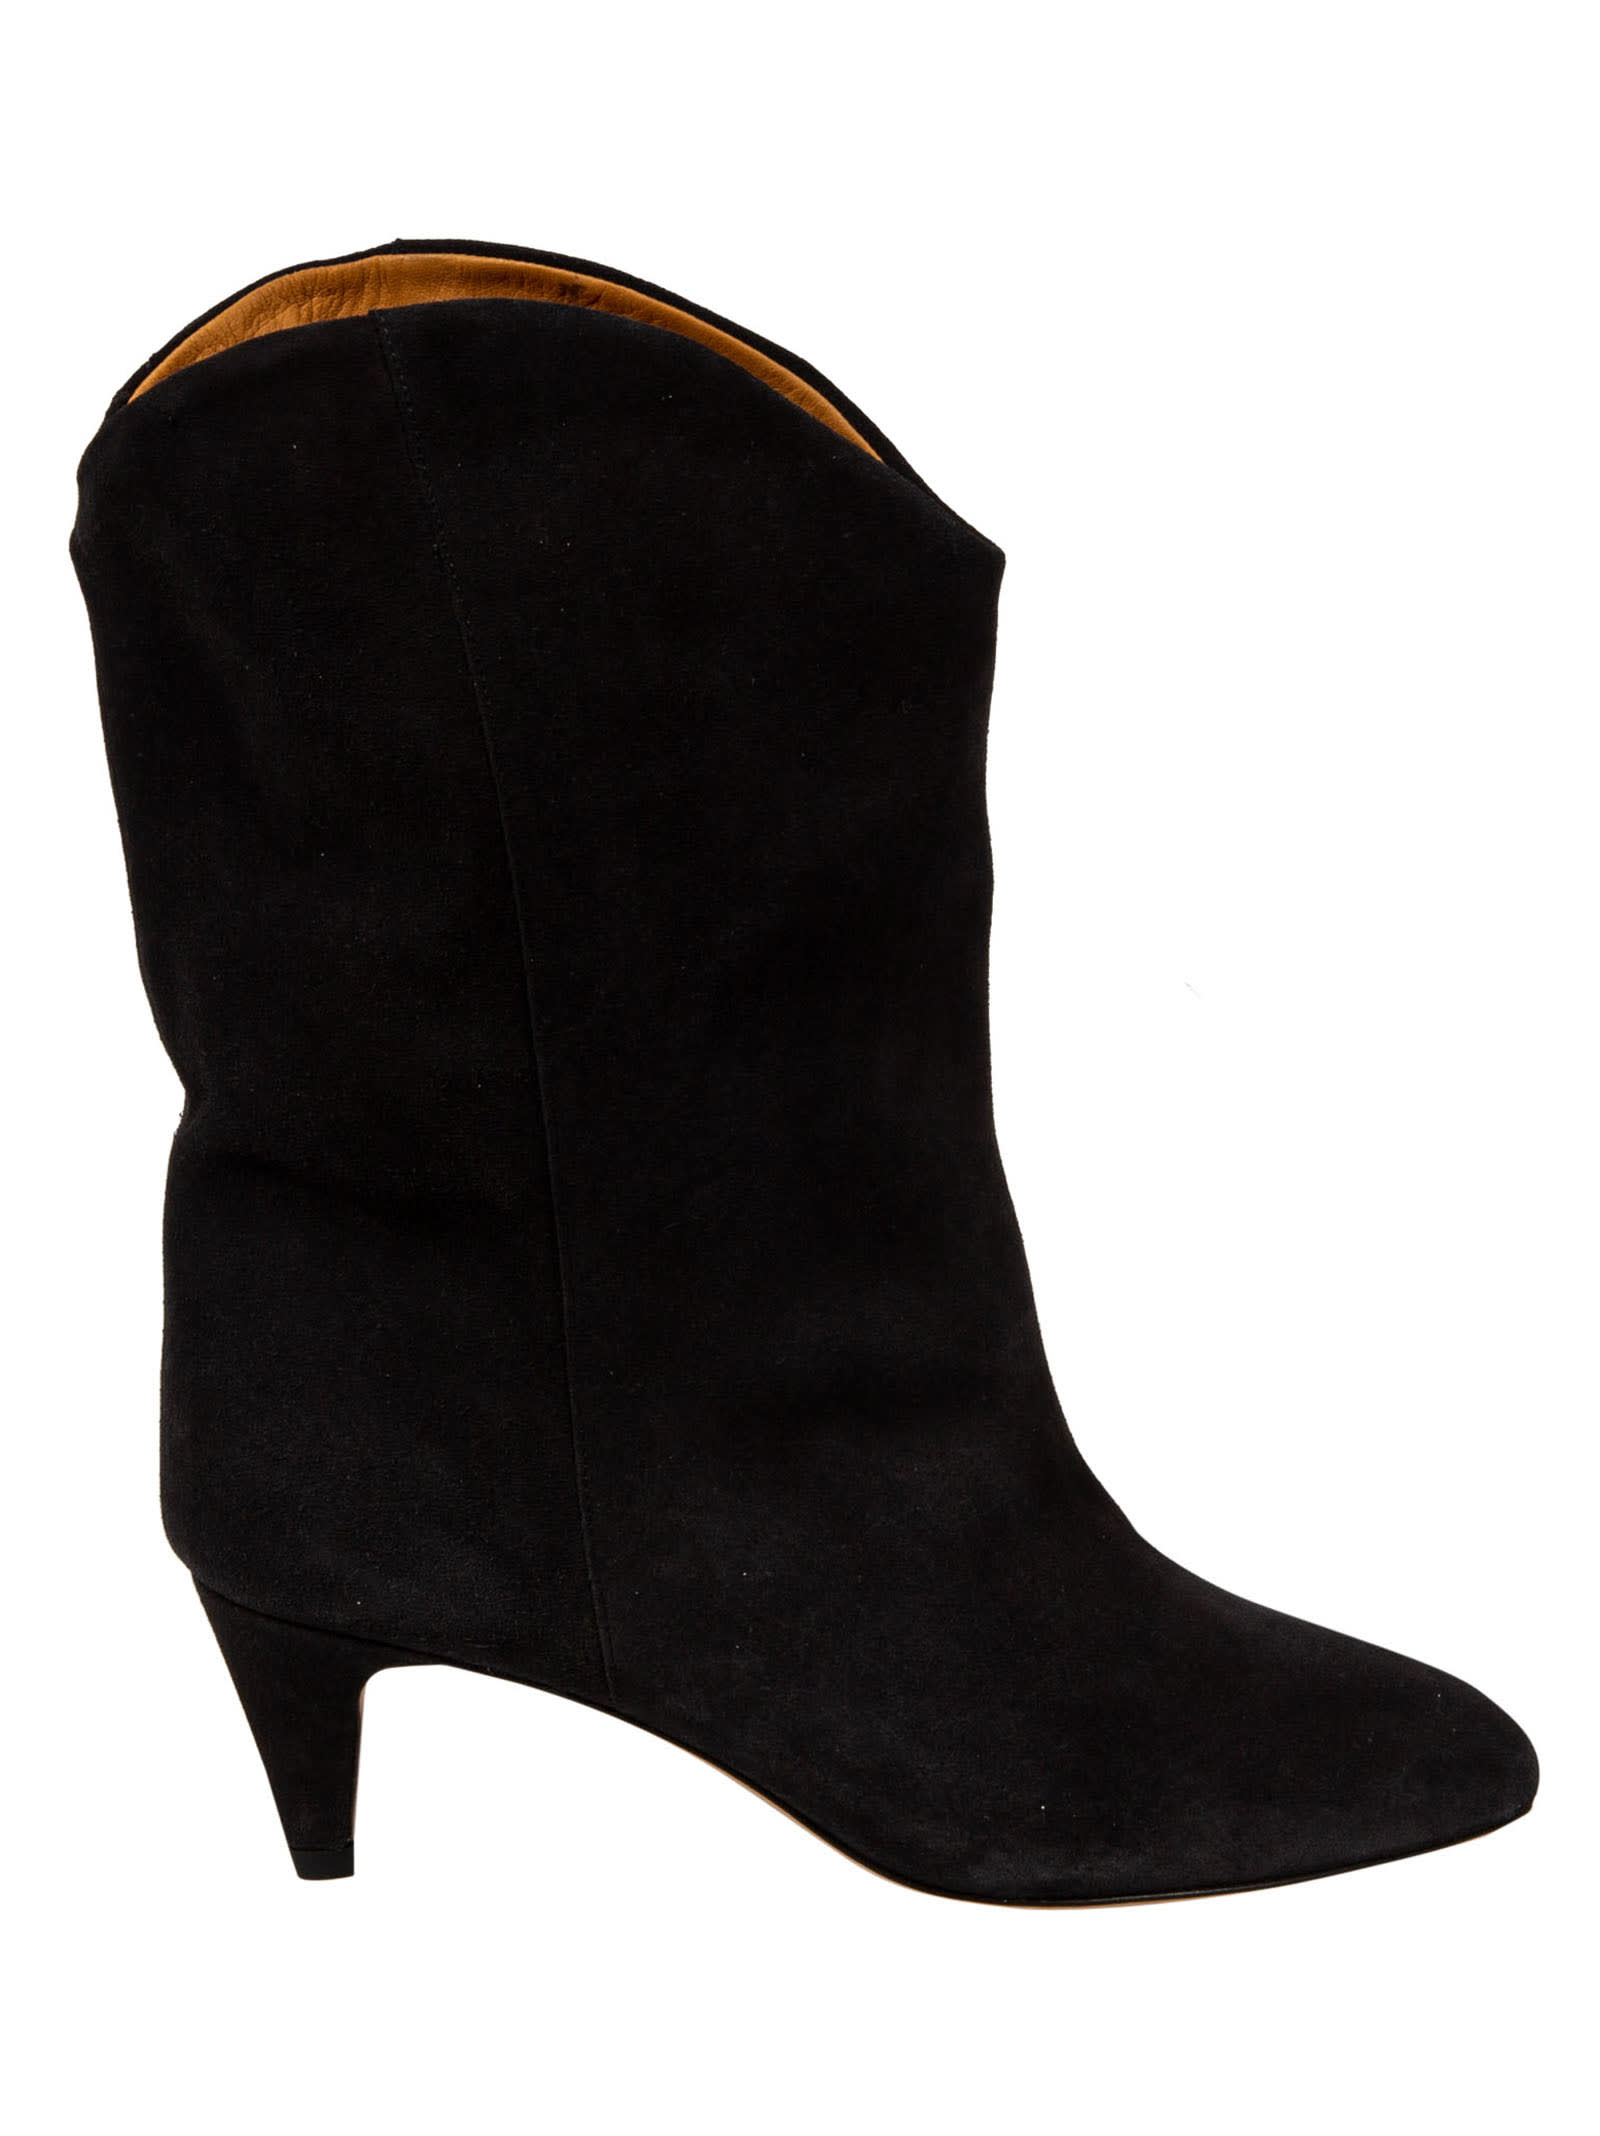 Buy Isabel Marant Classic Ease Boots online, shop Isabel Marant shoes with free shipping